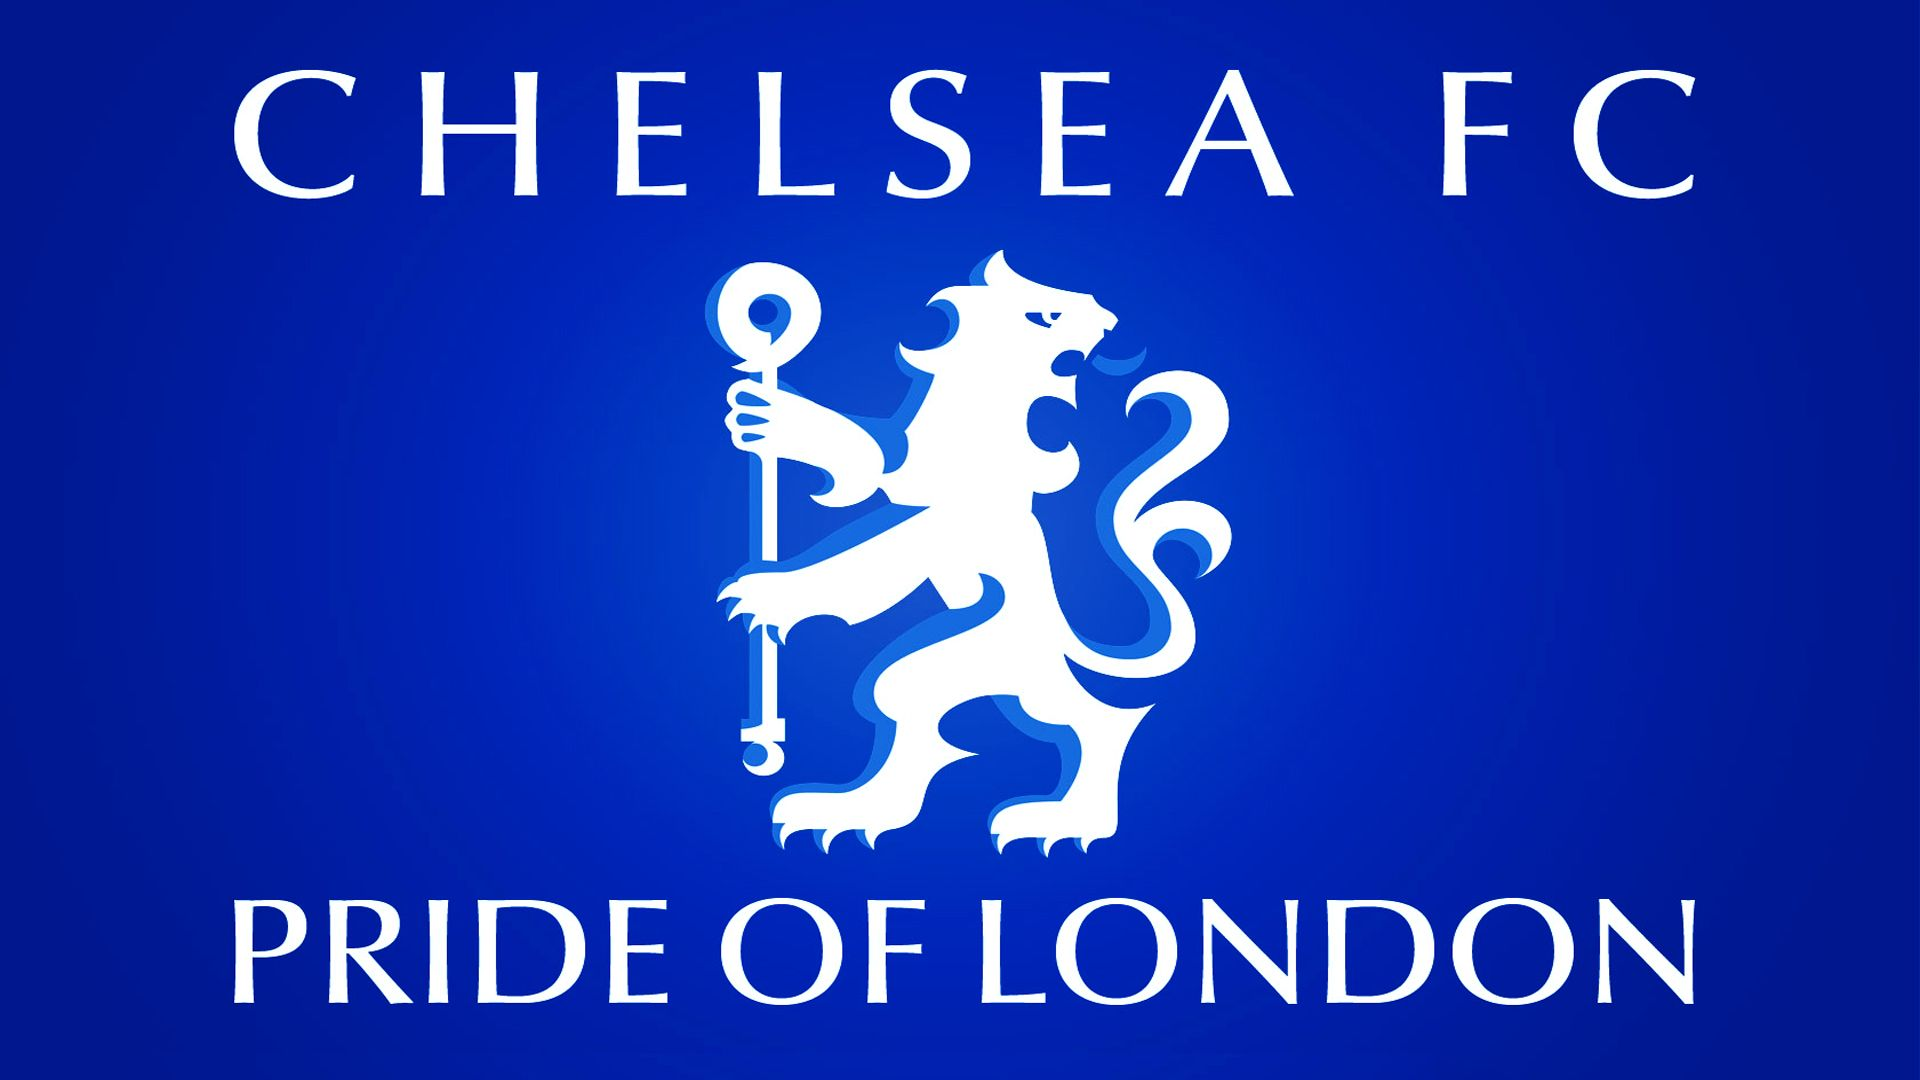 Chelsea wallpaper 38 ppride of llndon chelsea pinterest chelsea chelsea fc museum in london greater london voltagebd Gallery